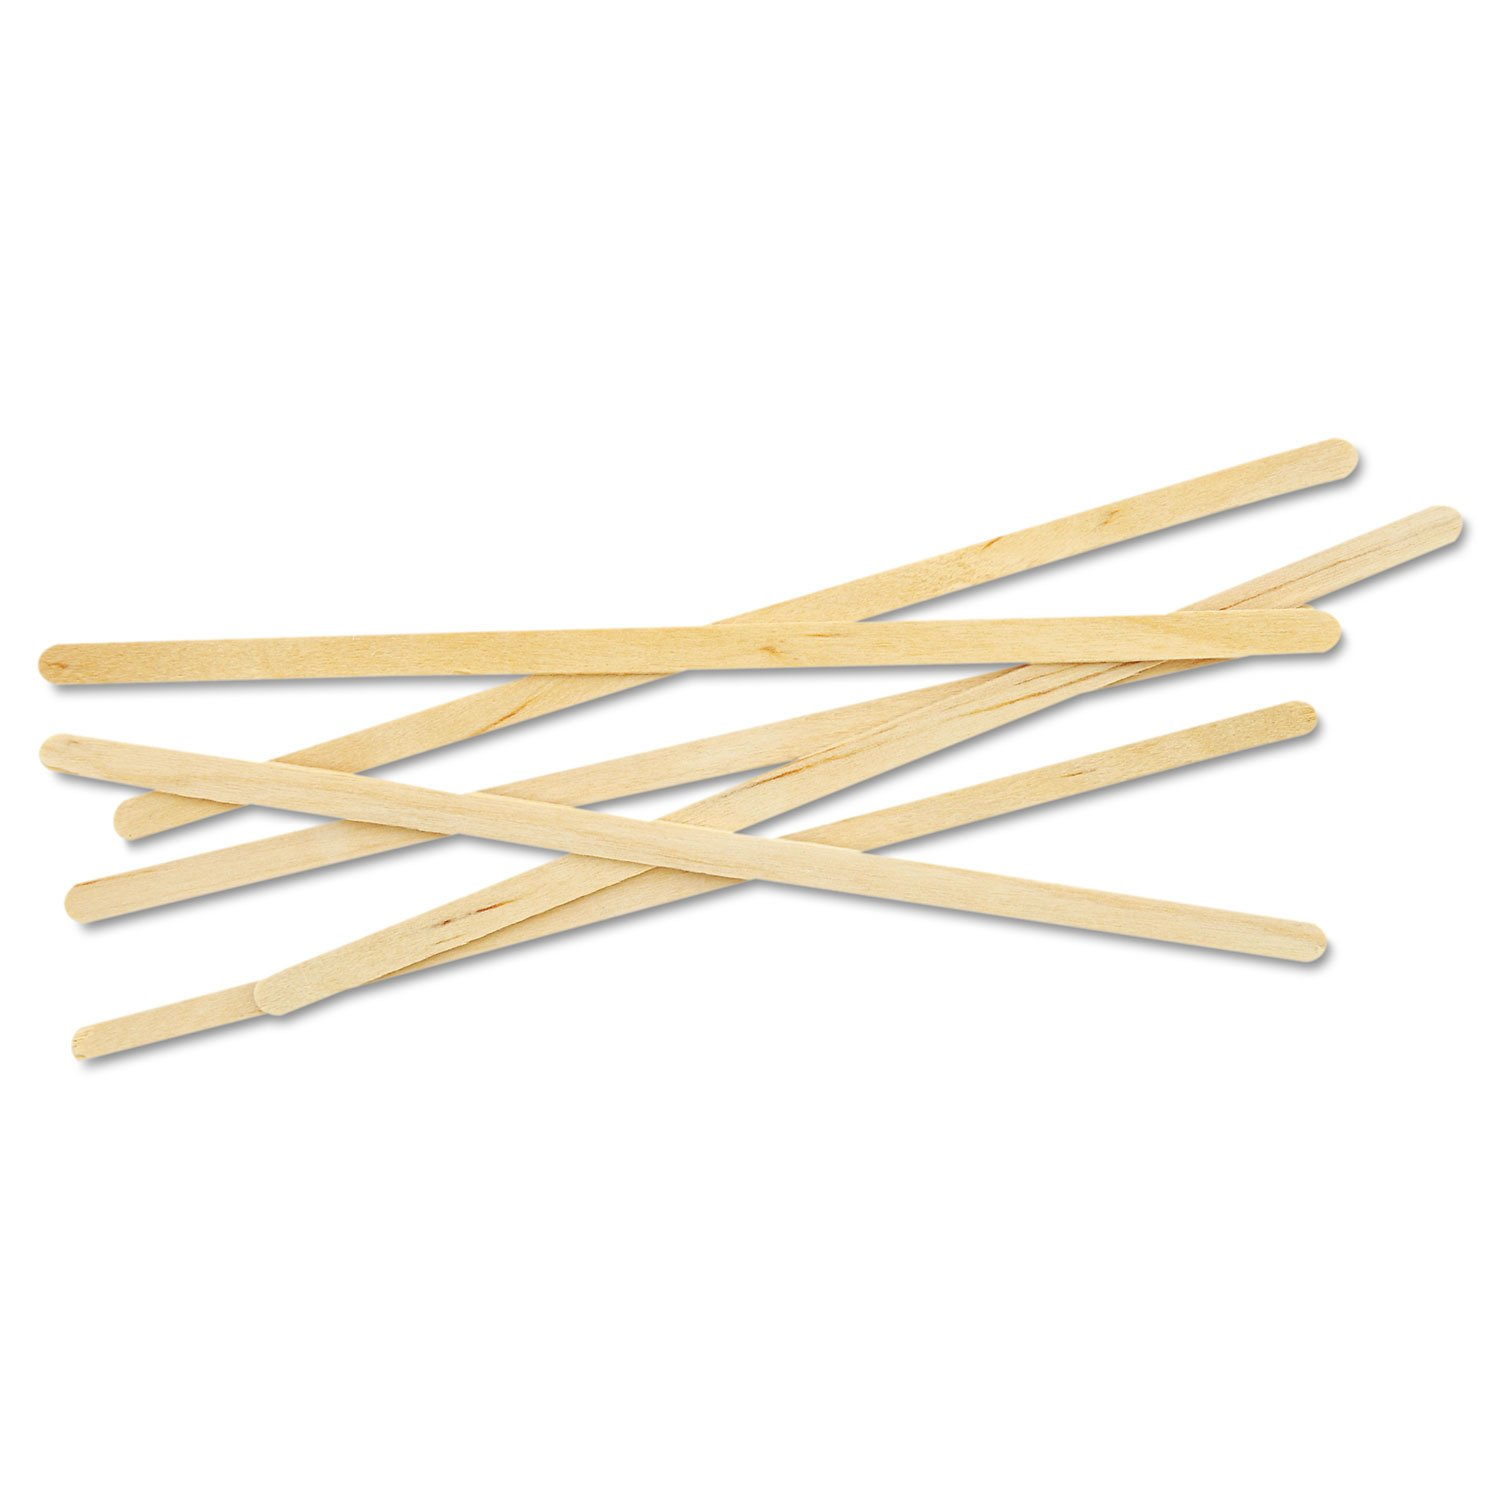 Eco-Products NTSTC10CCT Renewable Wooden Stir Sticks - 7-Inch 1000/PK 10 PK/CT by Eco-Products, Inc (Image #1)